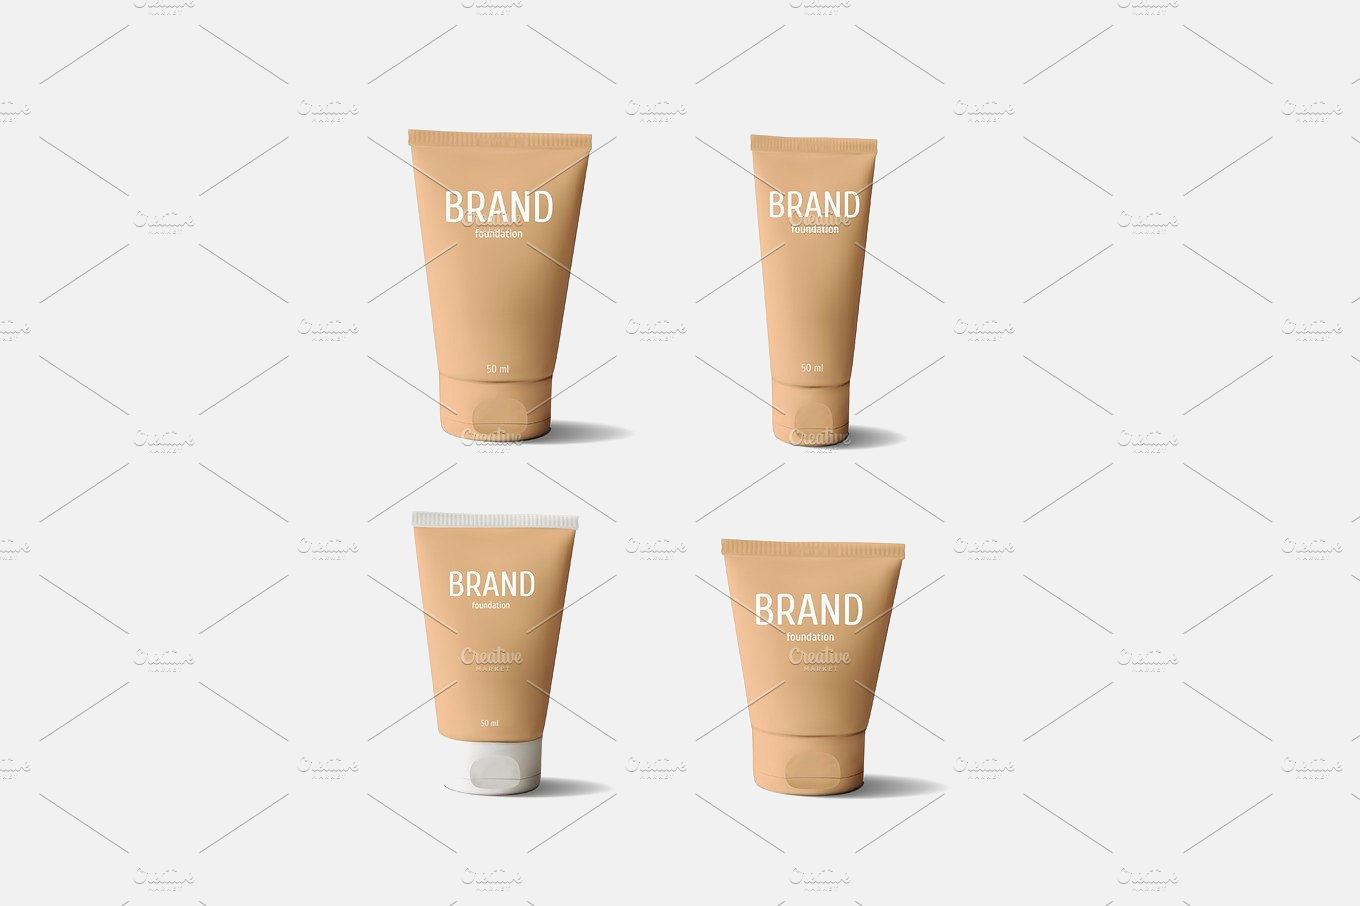 cosmetics product packaging